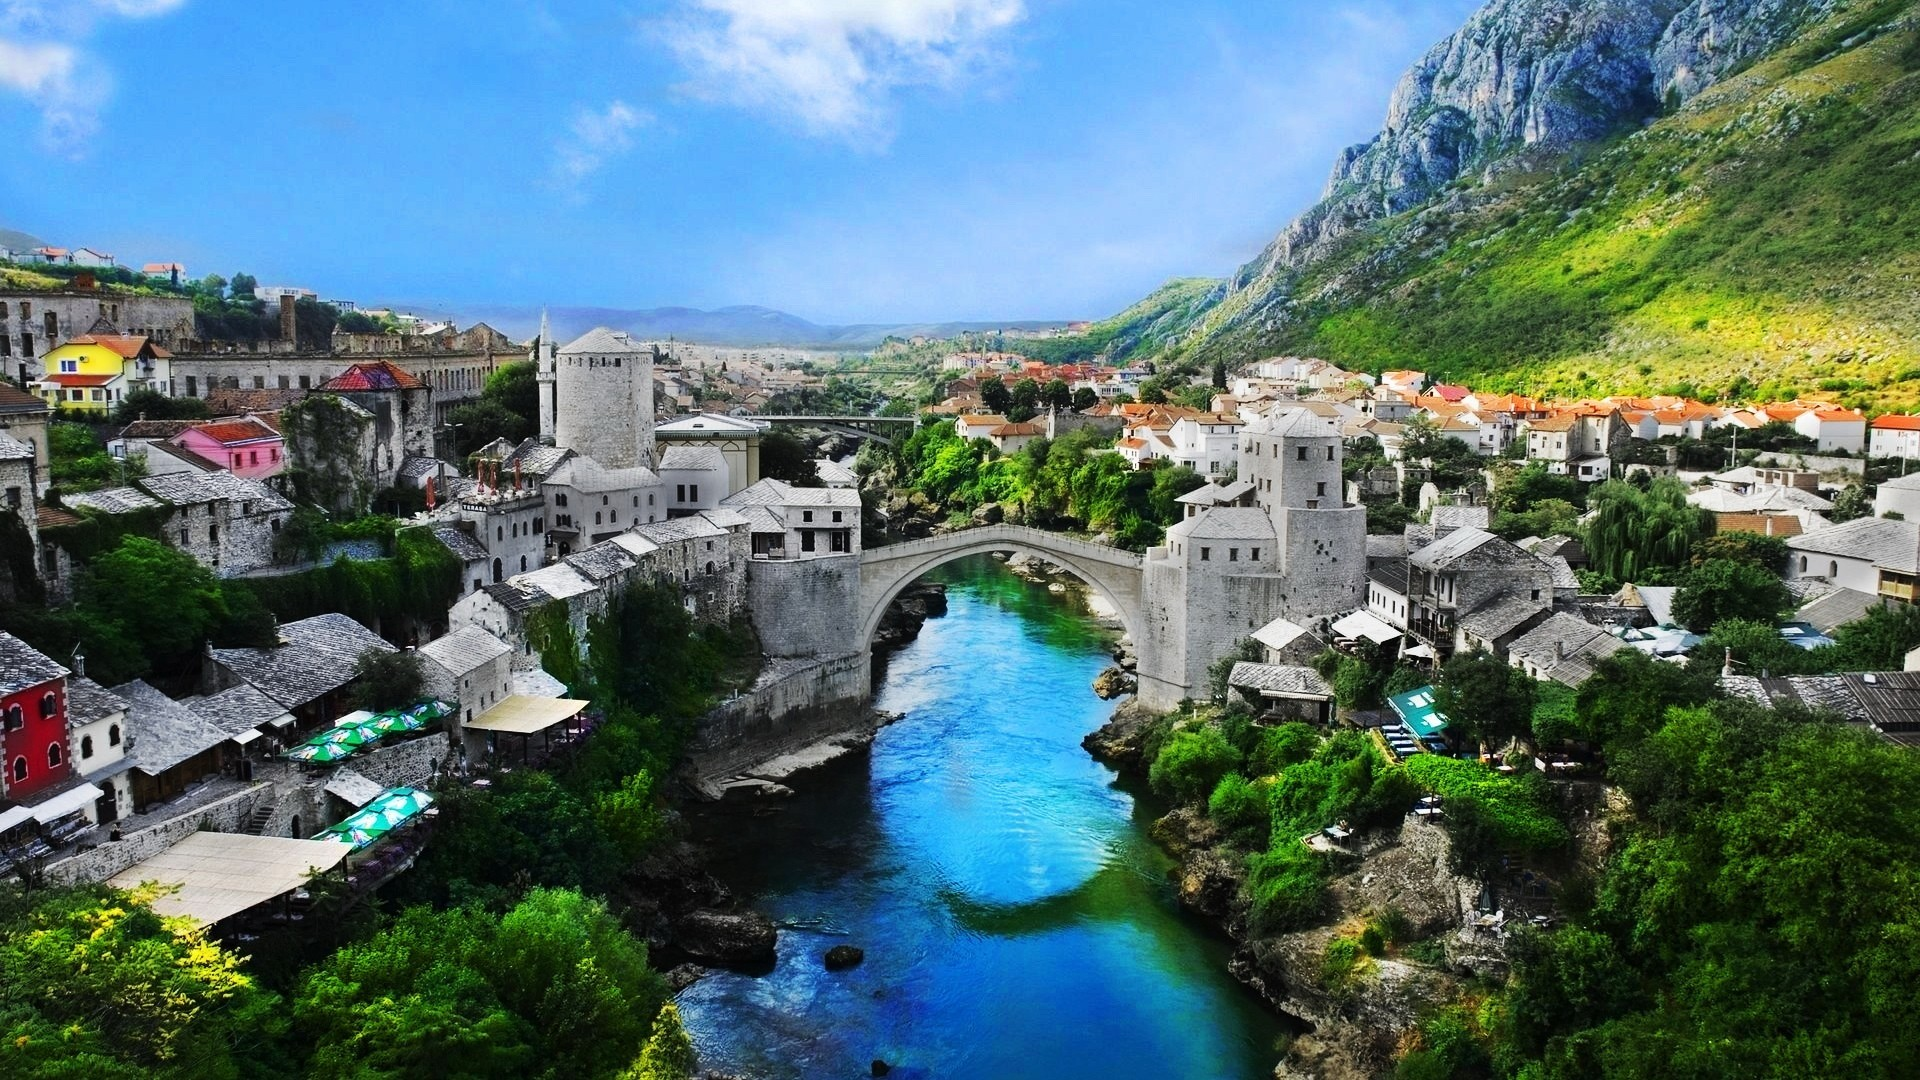 1920x1080 Preview wallpaper bosnia and herzegovina, mostar old town, mostar, nature,  landscape